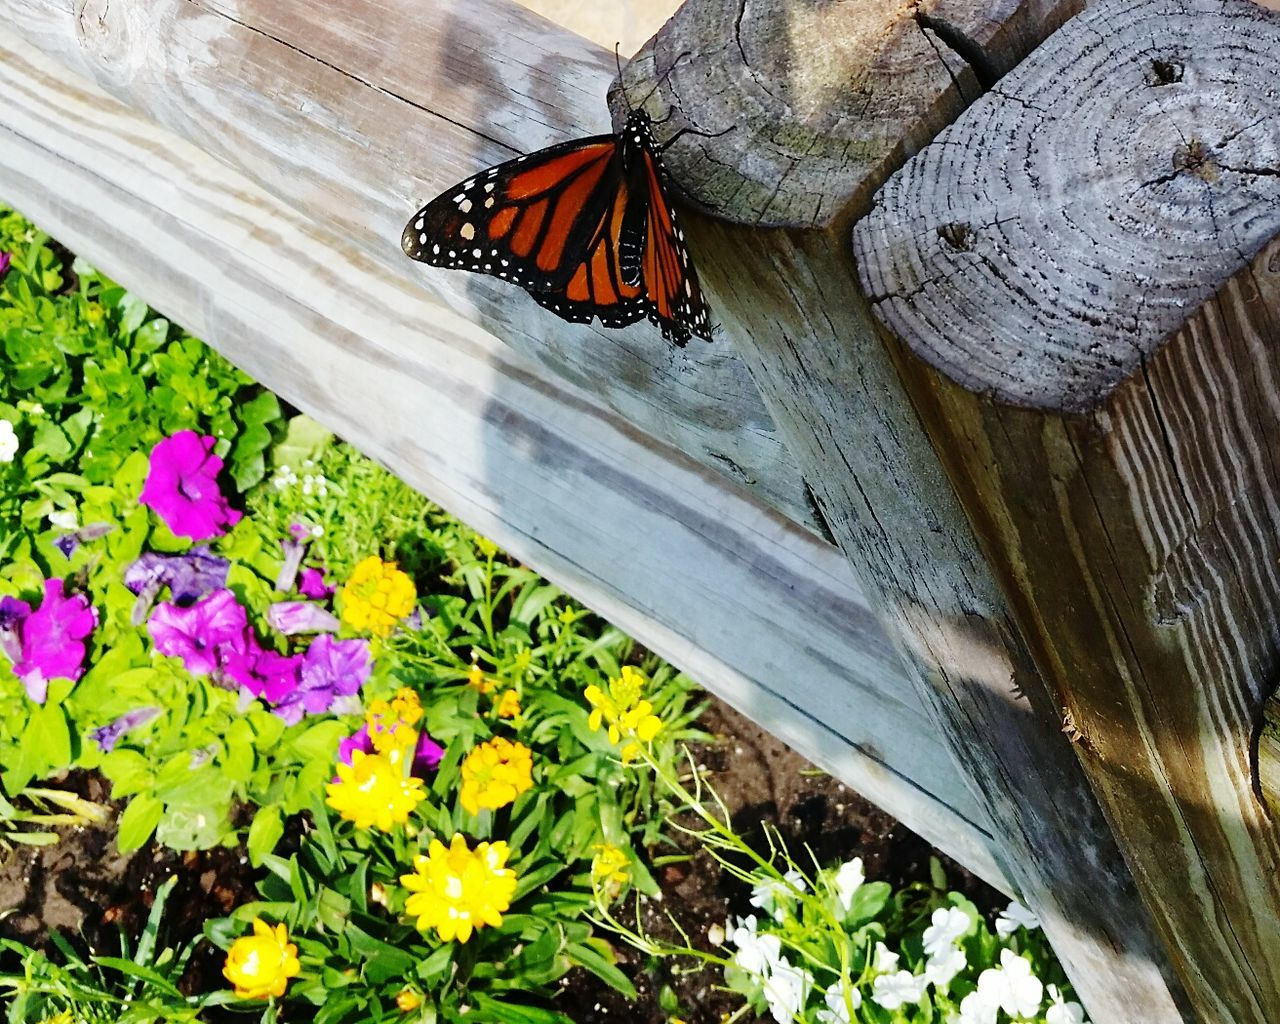 butterfly - insect, insect, flower, animal themes, one animal, nature, fragility, no people, growth, day, outdoors, beauty in nature, plant, animals in the wild, close-up, freshness, flower head